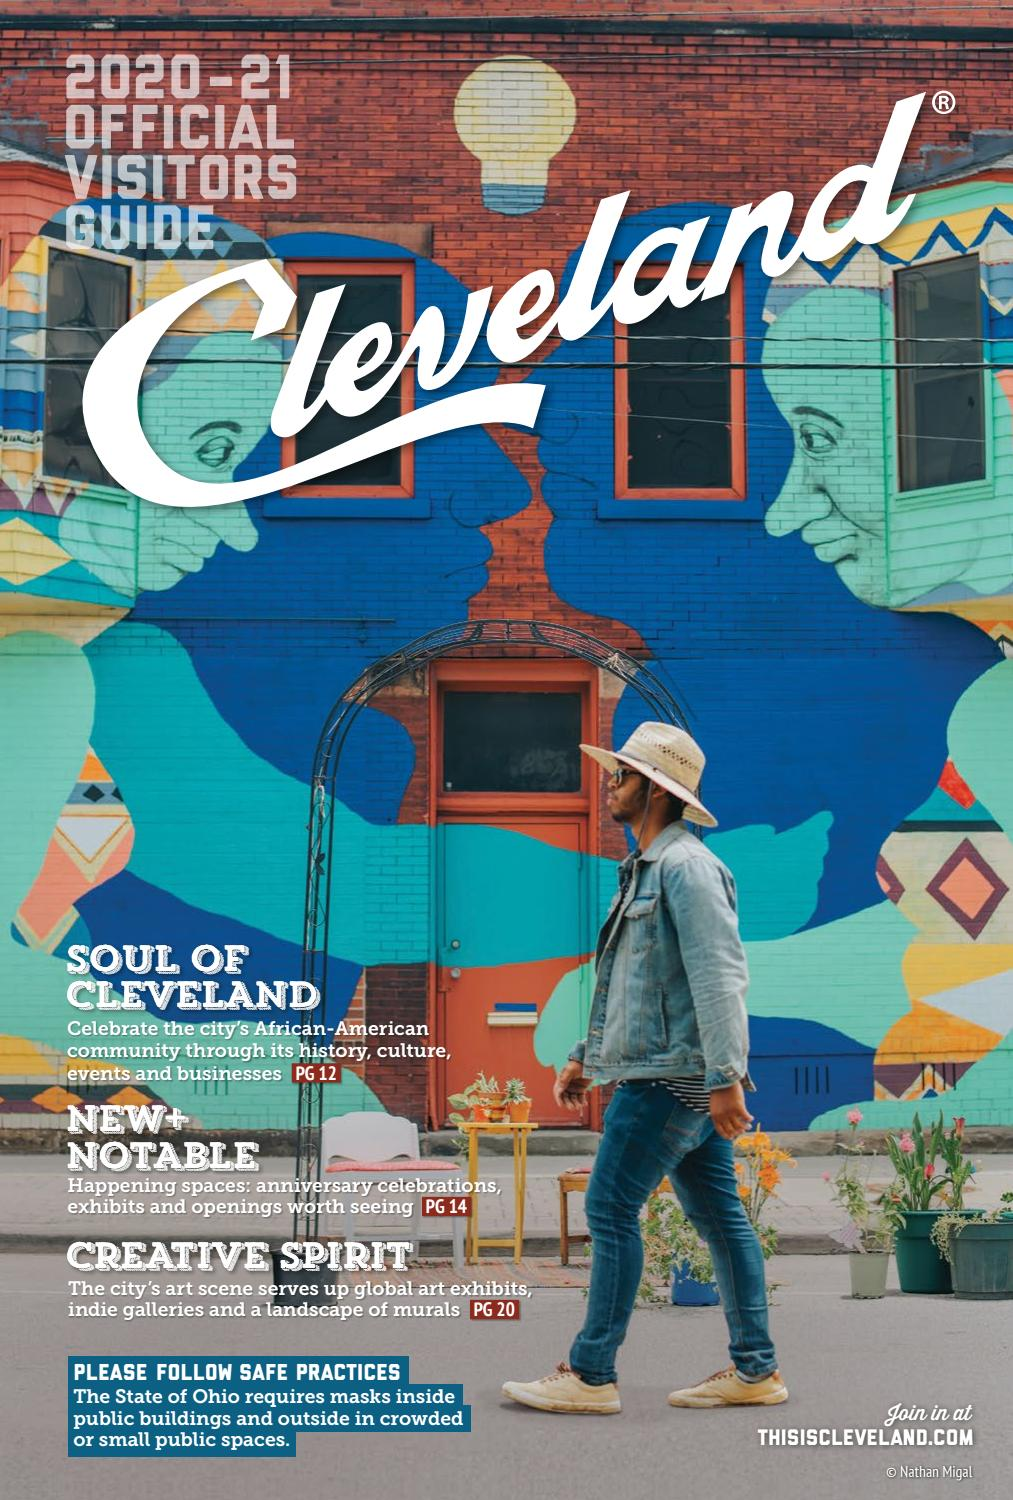 Grumpys Wickliffe Oh Christmas Party 2020 2020 21 Cleveland Official Visitors Guide by Destination Cleveland